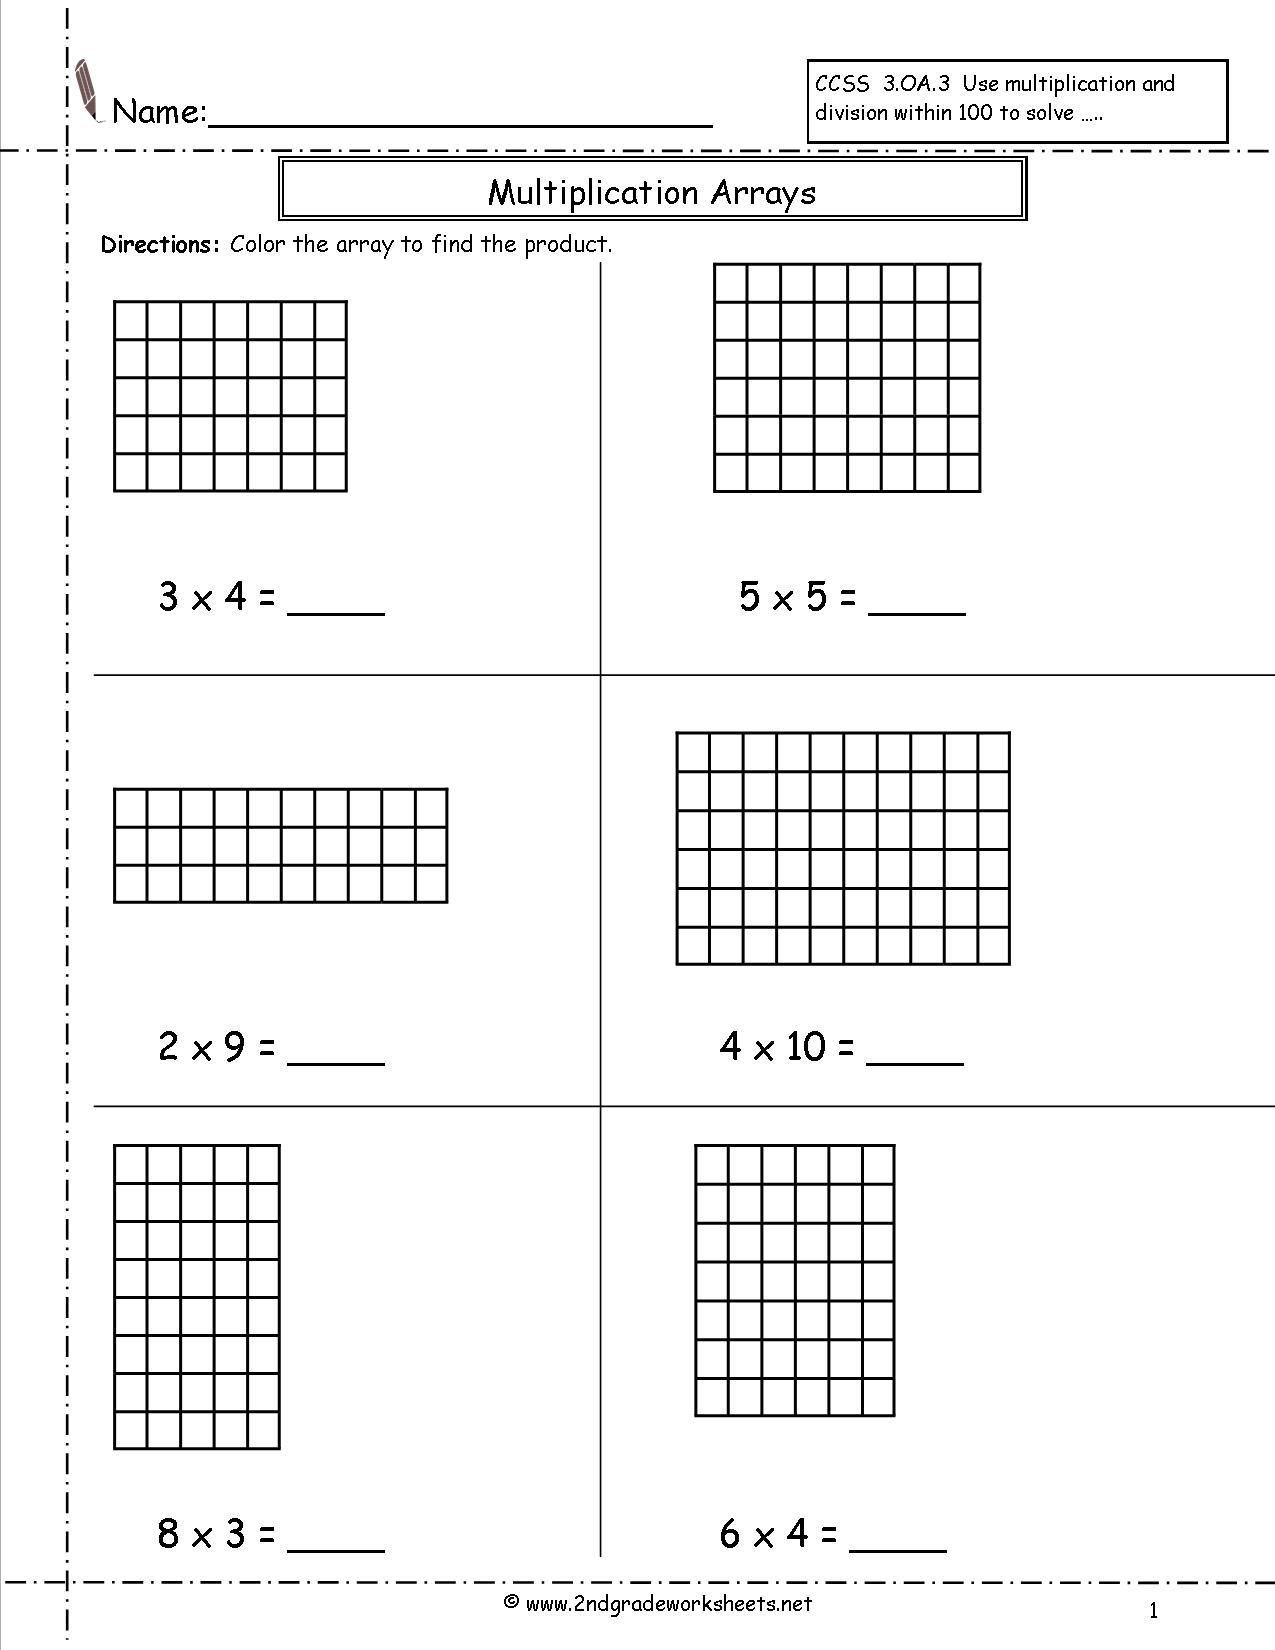 arrays worksheets | Multiplication Arrays Worksheets | nouns verbs ...